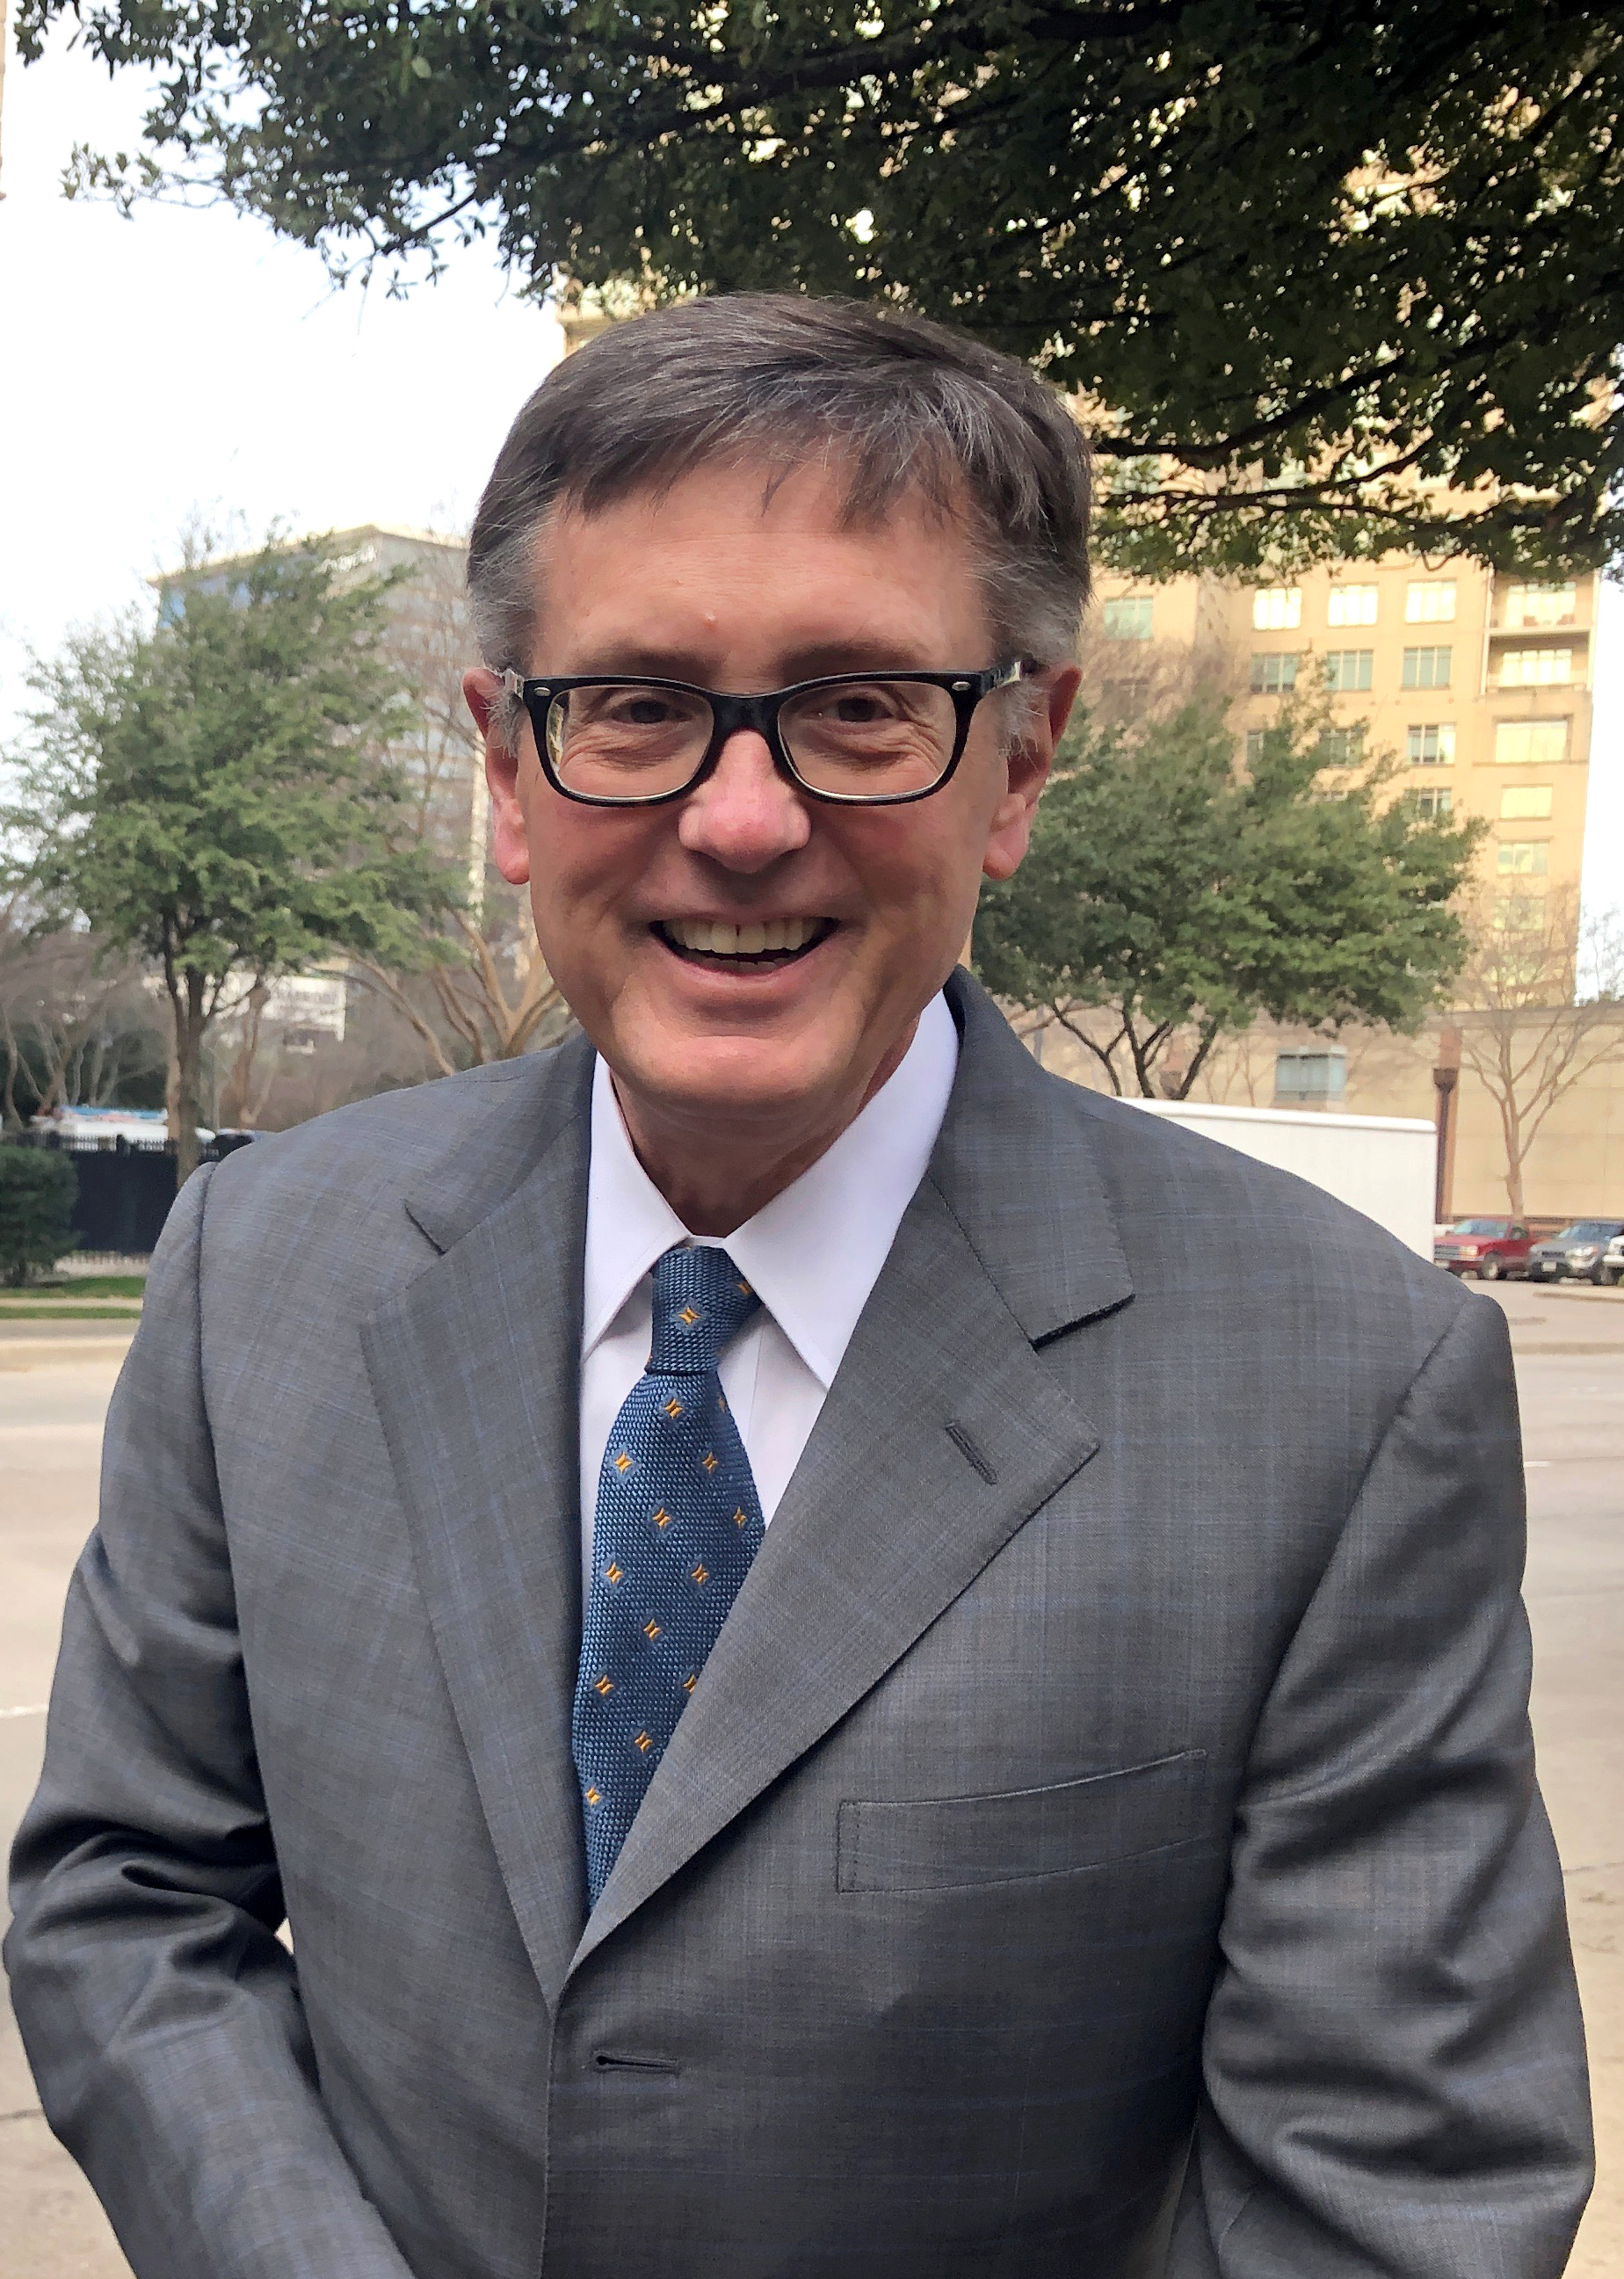 Federal Reserve Vice Chairman Richard Clarida poses before boarding a bus to tour South Dallas as part of a community outreach by U.S. central bankers, in Dallas, Texas, U.S., February 25, 2019. REUTERS/Ann Saphir